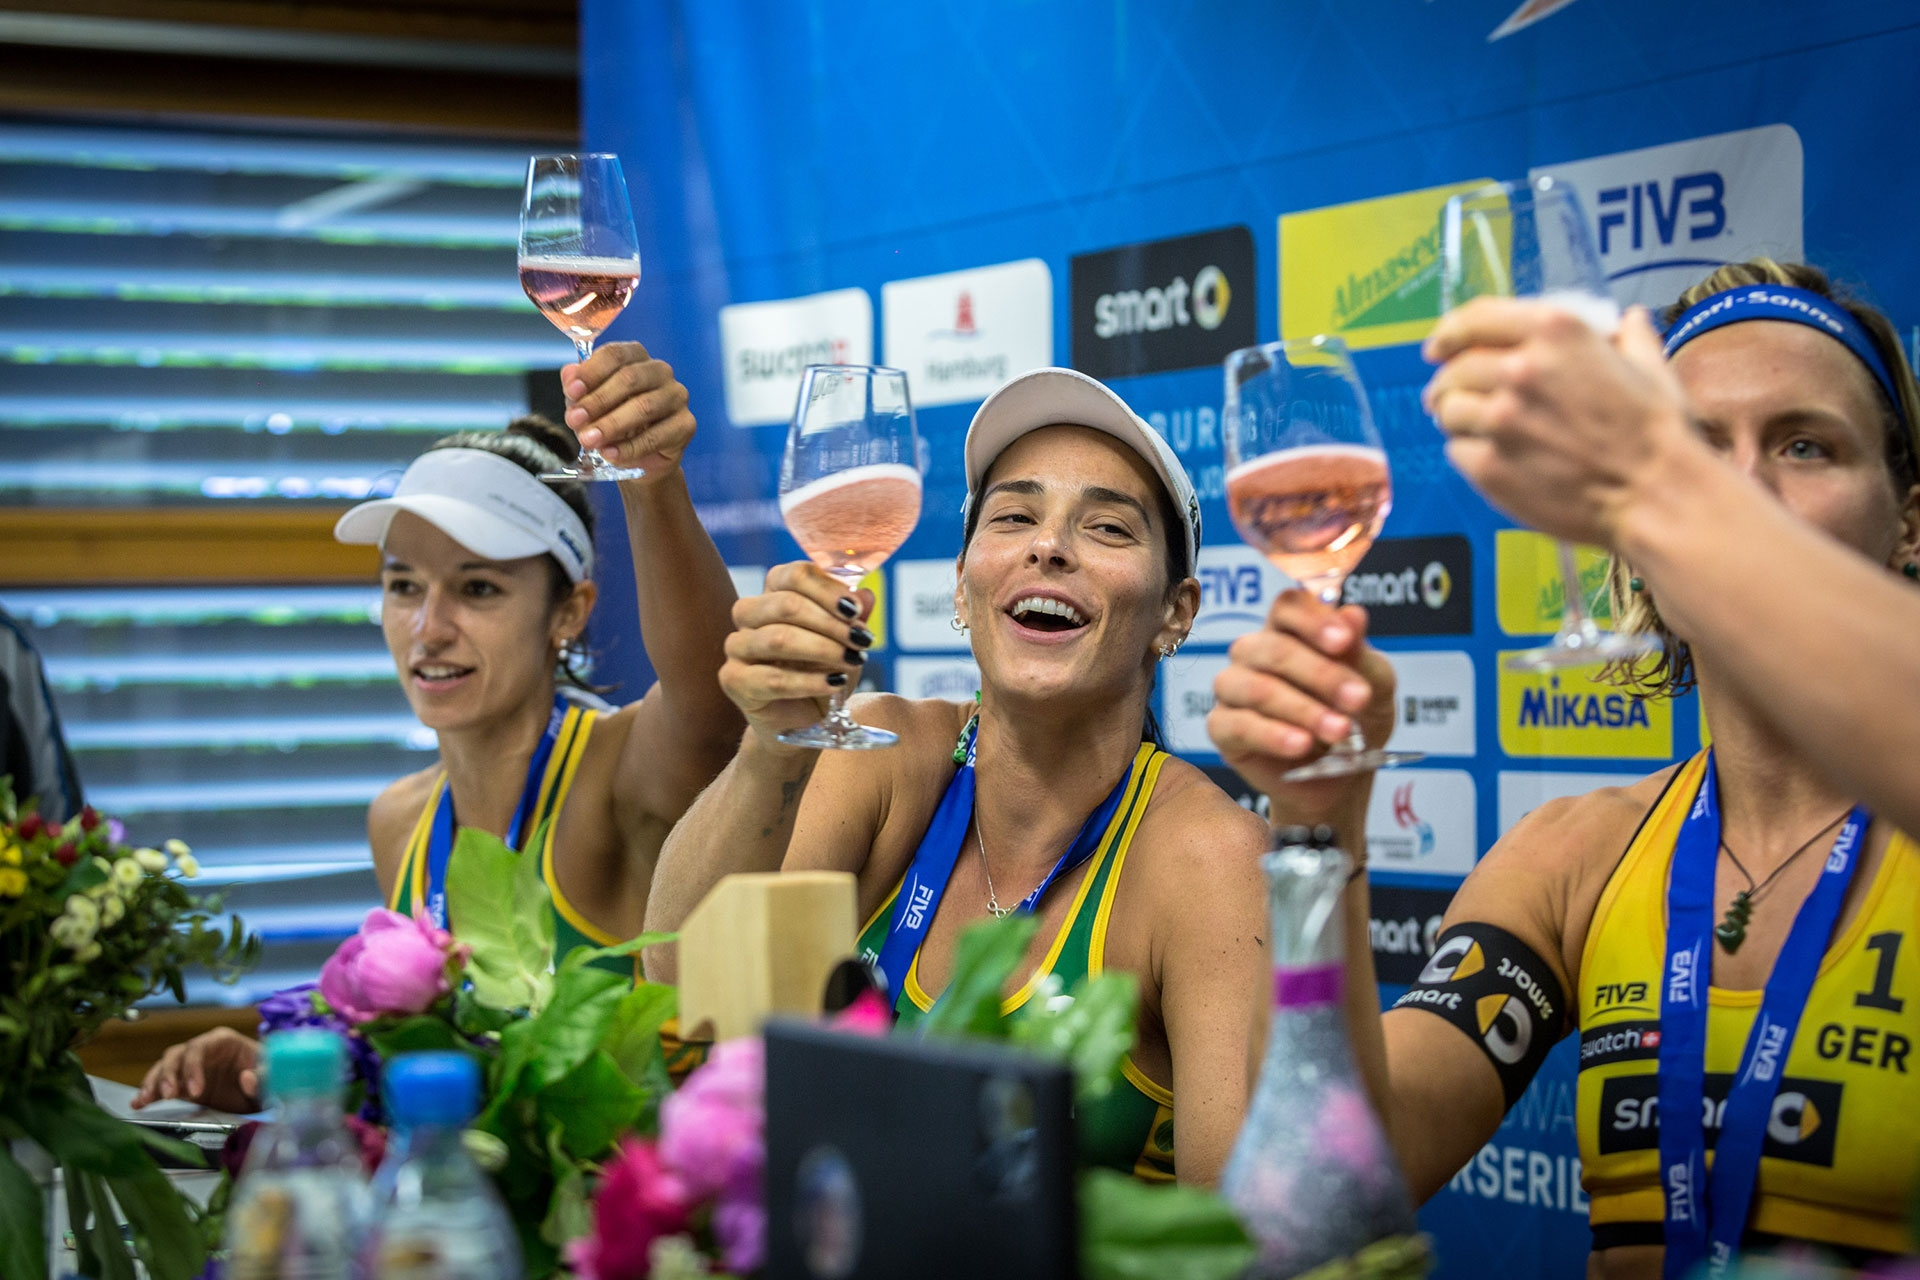 Prost! Brazilian silver medalists Agatha/Barbara toast the champions. Photocredit: Stefan Moertl.